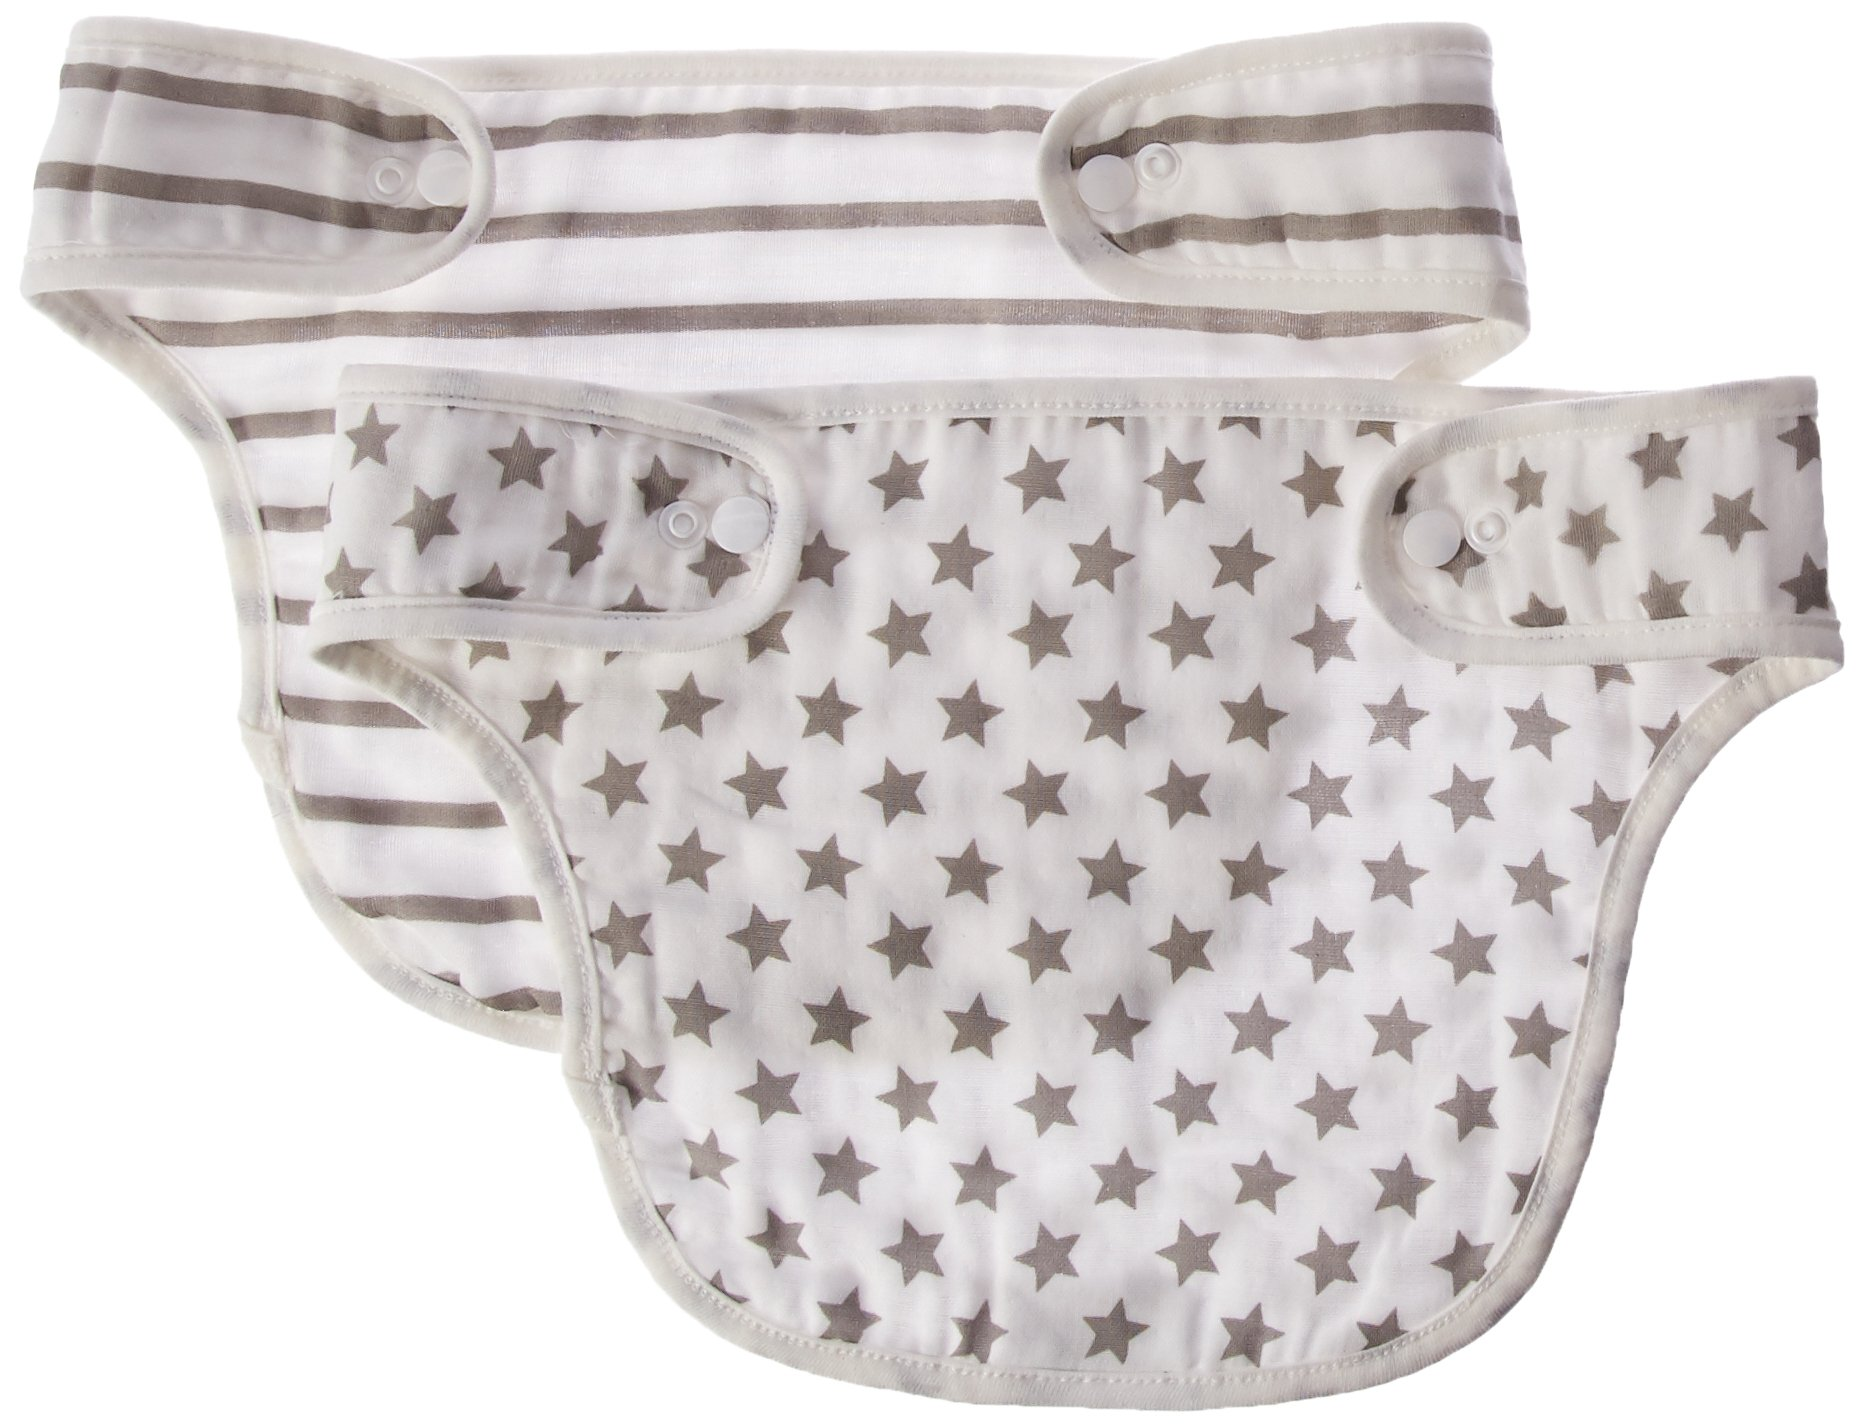 Baby Preferred Ergo, Babybjorn, lillebaby drool pads for teething baby in carrier, Ergobaby Easy Snug Infant Drool Bib 2-in-1 Sun Shade 6 Layer Protection Burping Cloths Design - Stars & Stripes